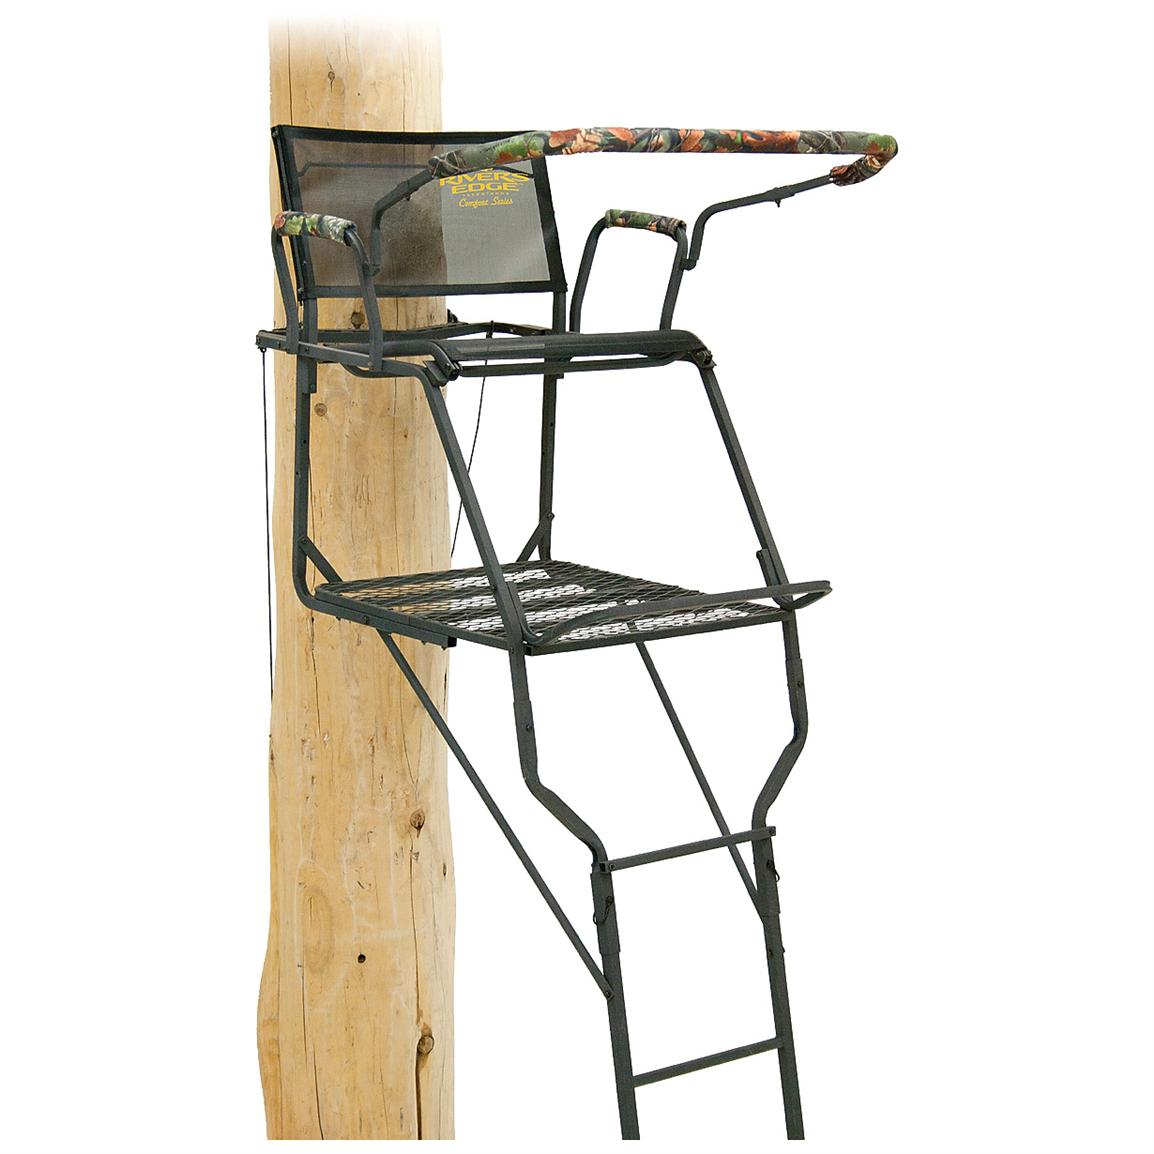 Accommodates Bow And Gun Shooting With Extra Wide Flip Up Seat And Extra